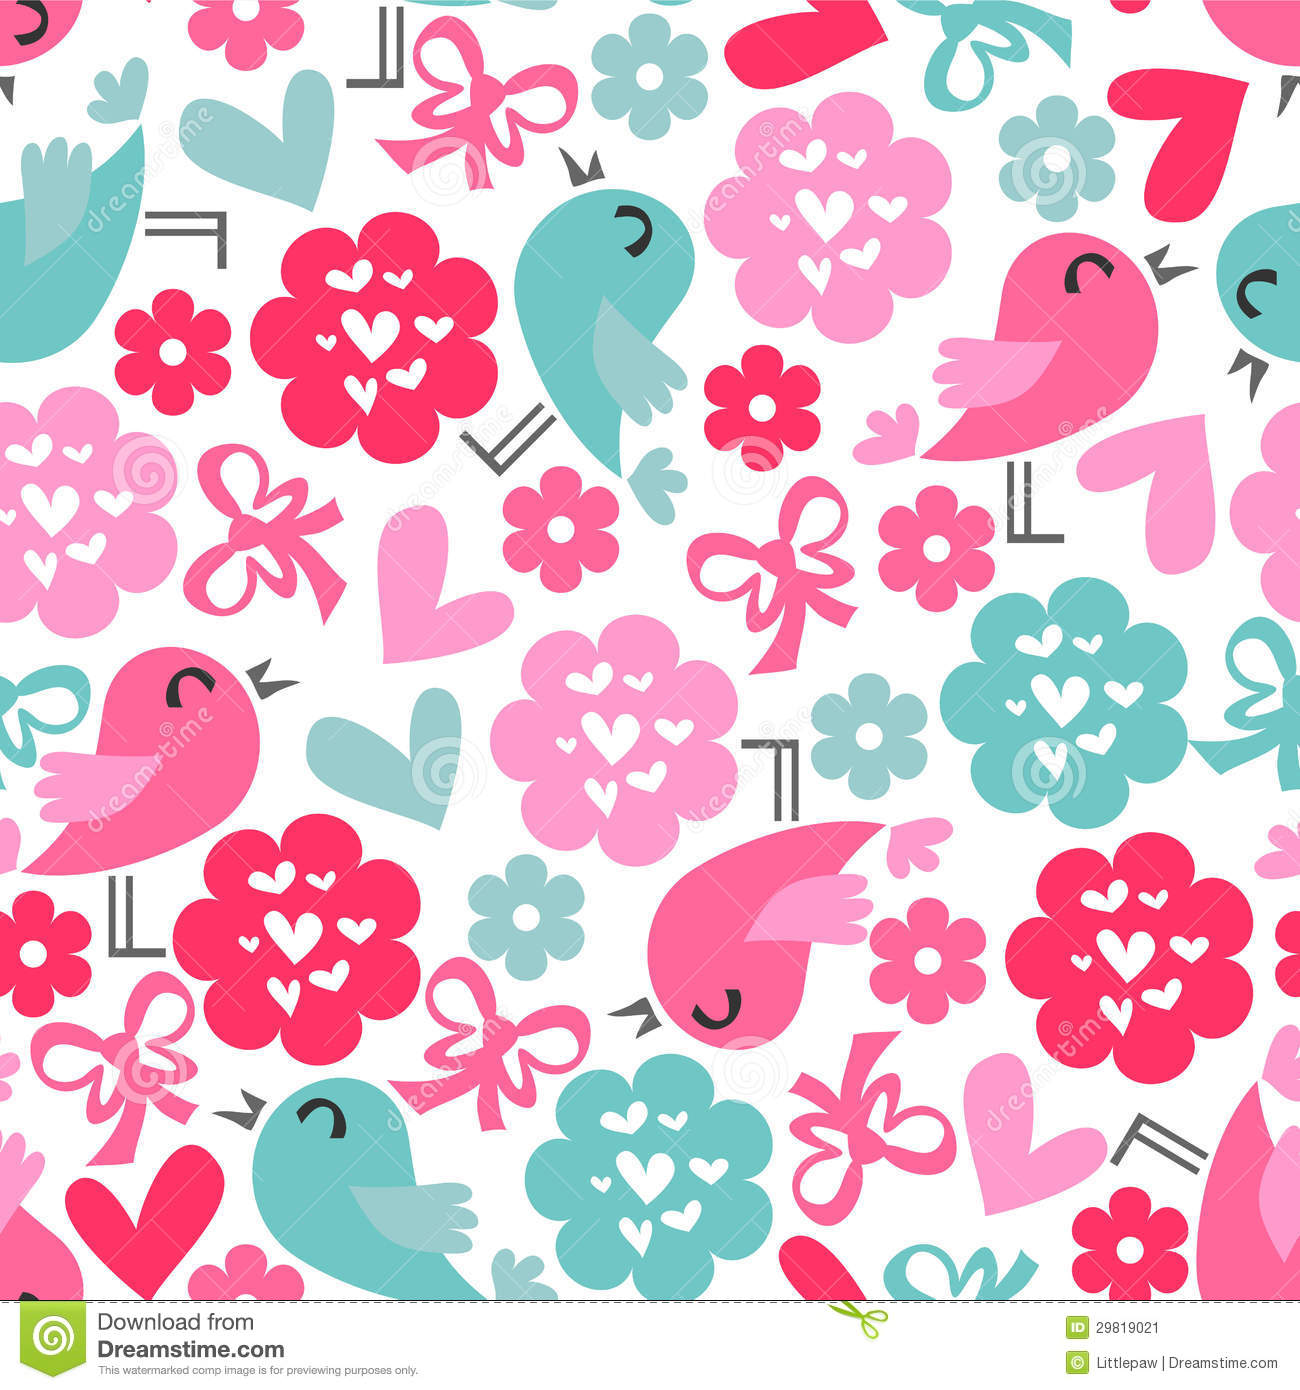 Download Seamless Pattern With Birds And Hearts Stock Vector - Illustration of sweet, romance: 29819021